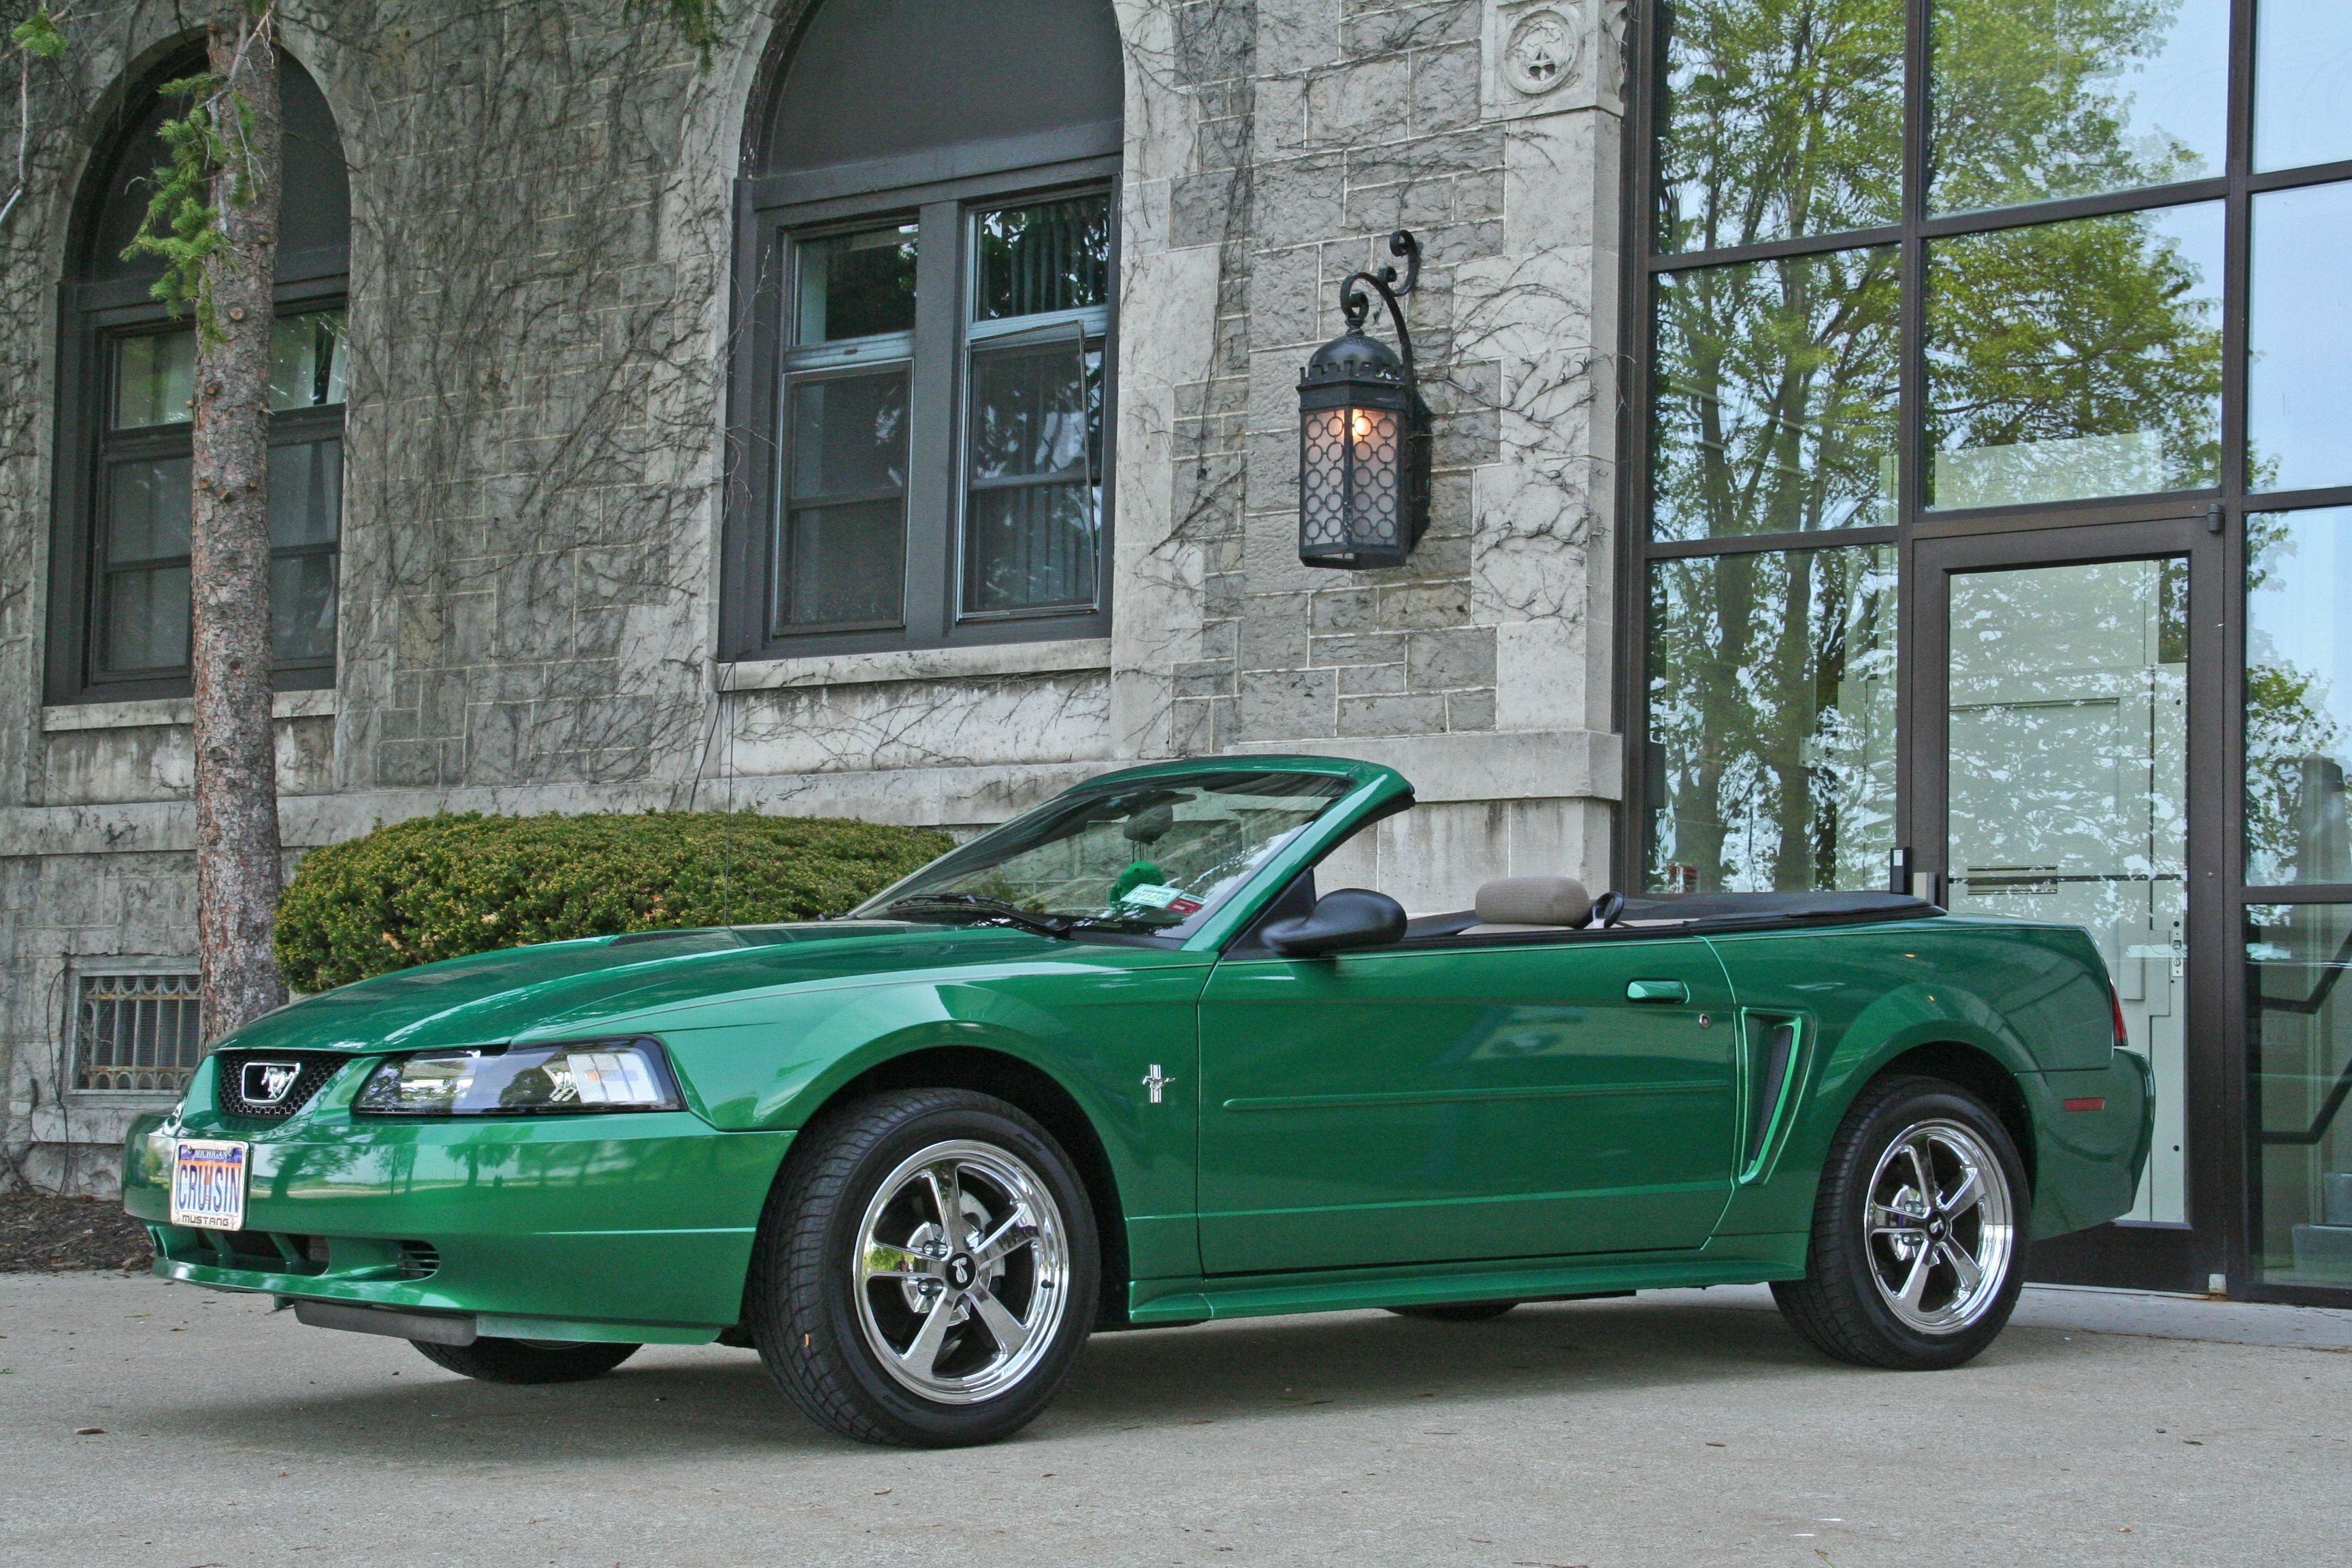 2000 Electric Green Mustang Convertible Cleared Smoked Corners And Chrome Afs Rims Shadeofgreenmustangregistry Sgmr